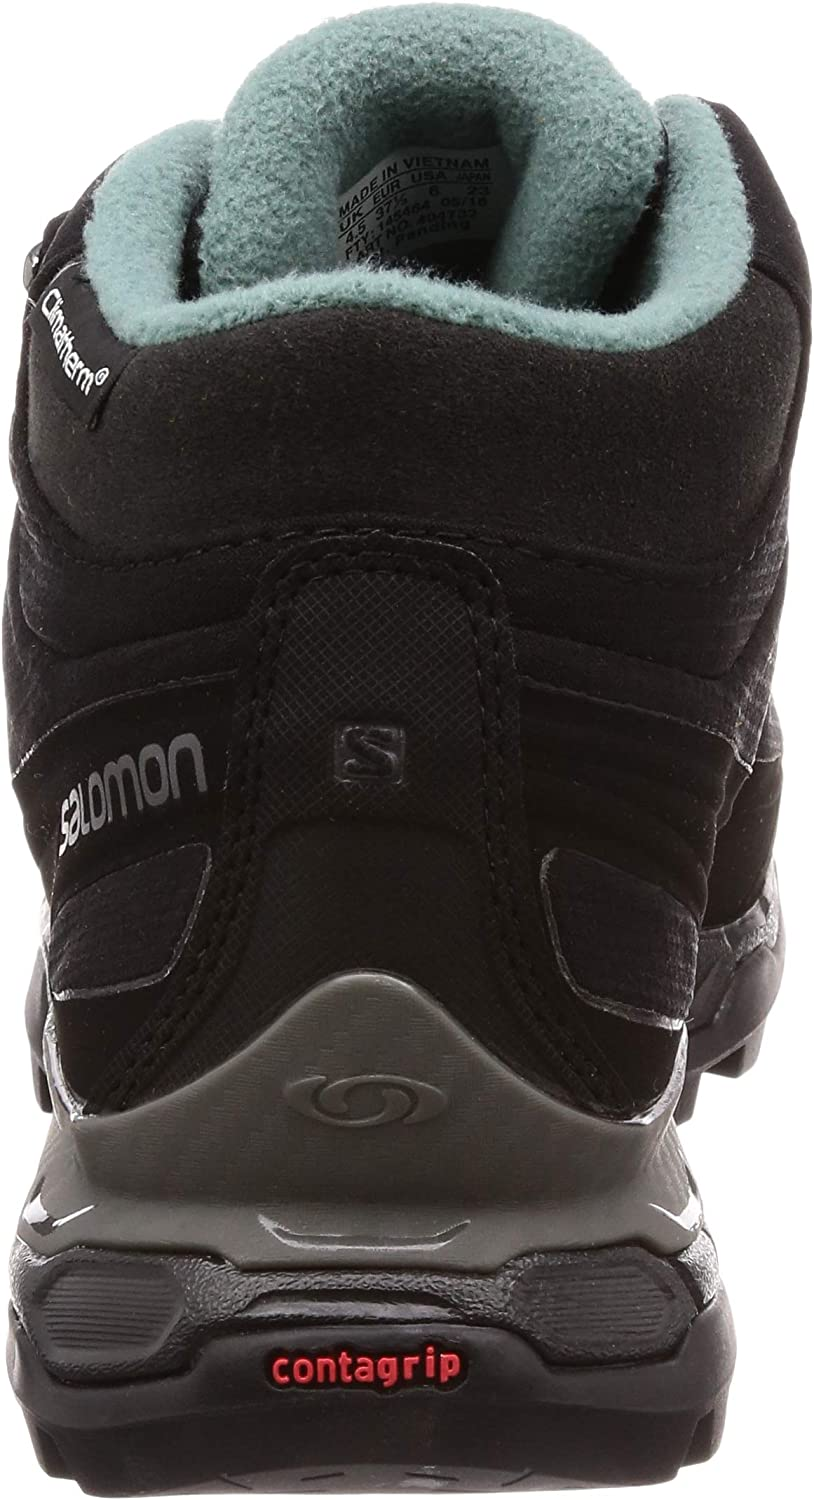 Salomon Shelter Spikes CS WP 404732 Botas de Senderismo